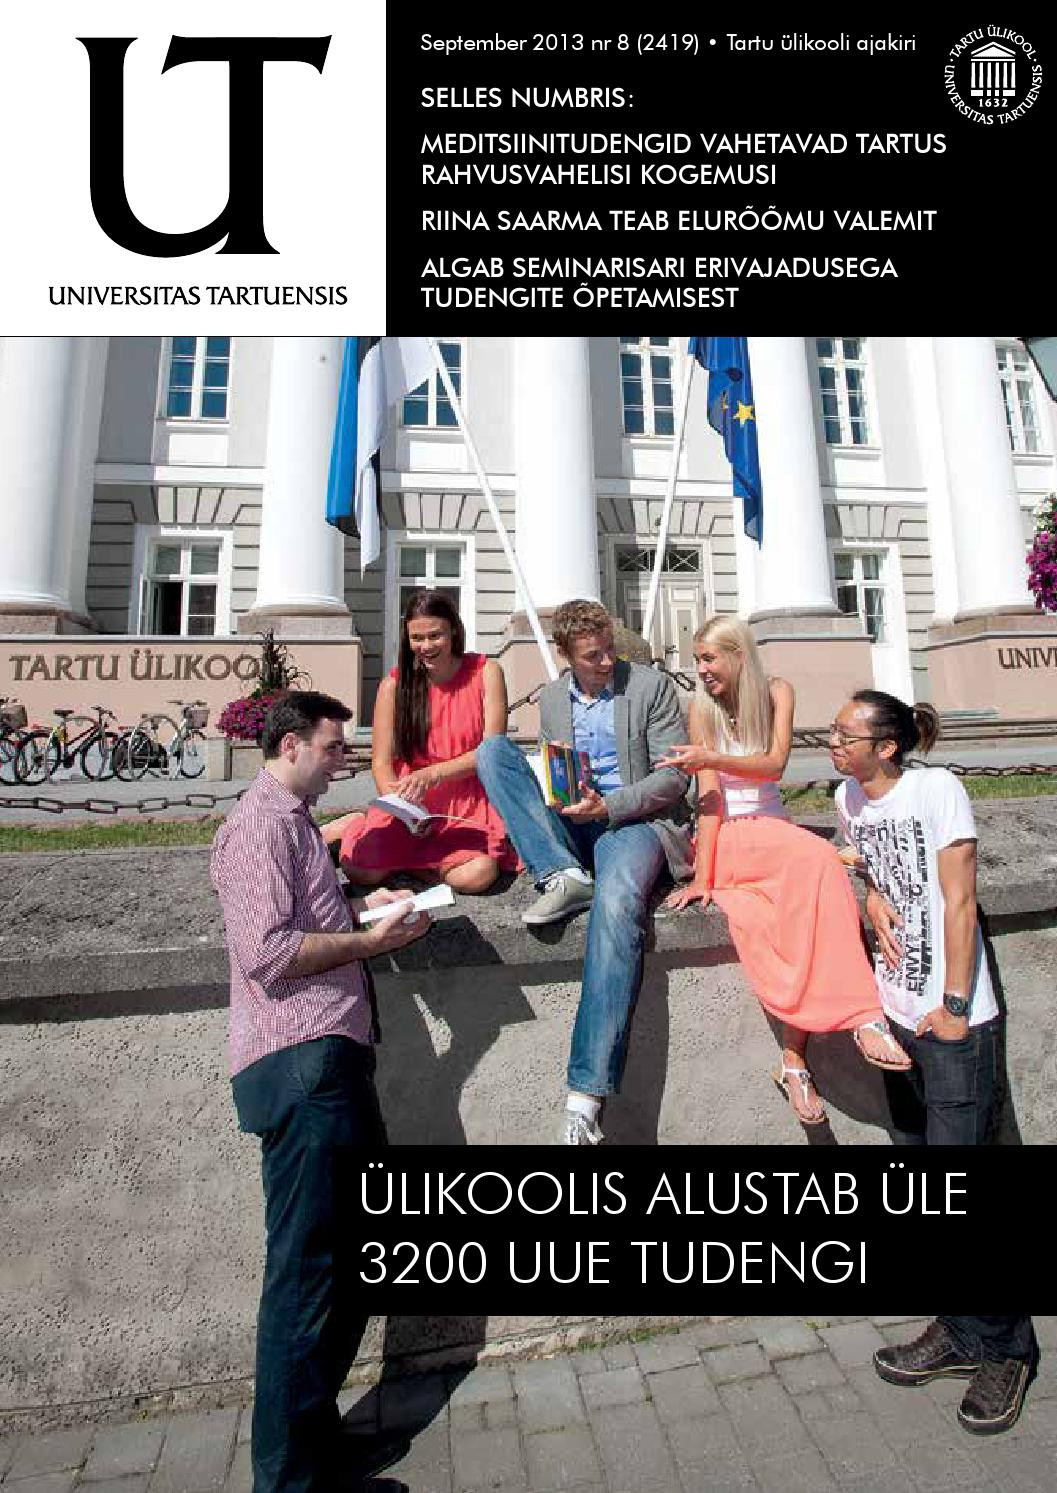 bc53048e4e5 UT september 2013, nr 8 by Universitas Tartuensis - issuu